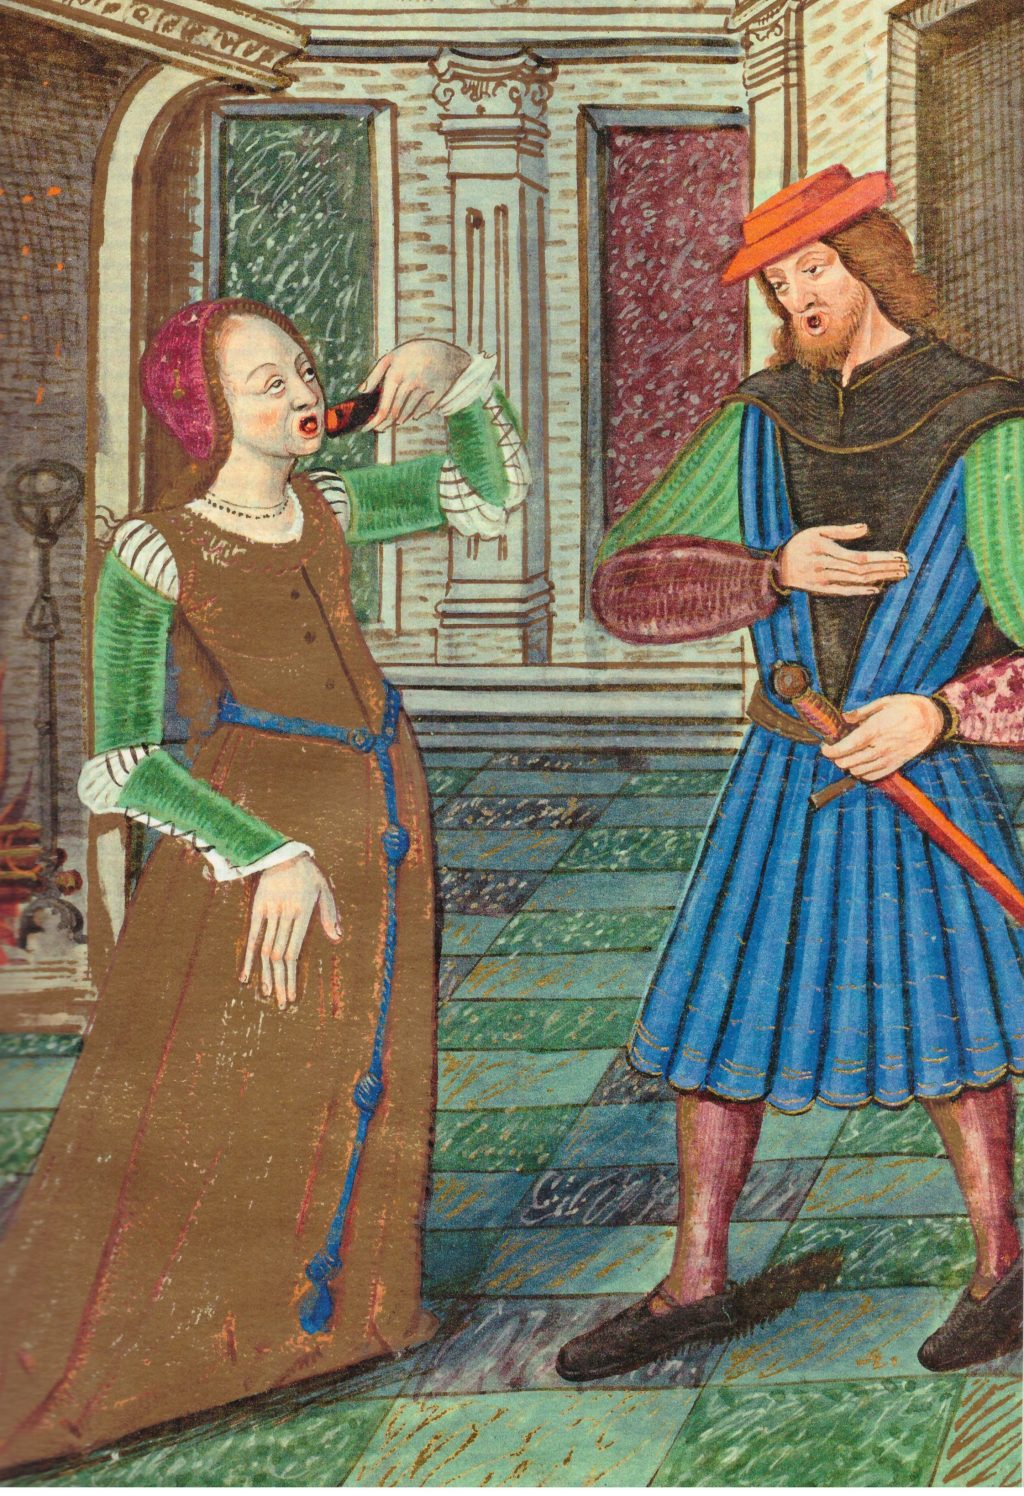 Detail of a miniature from the Canzoniere